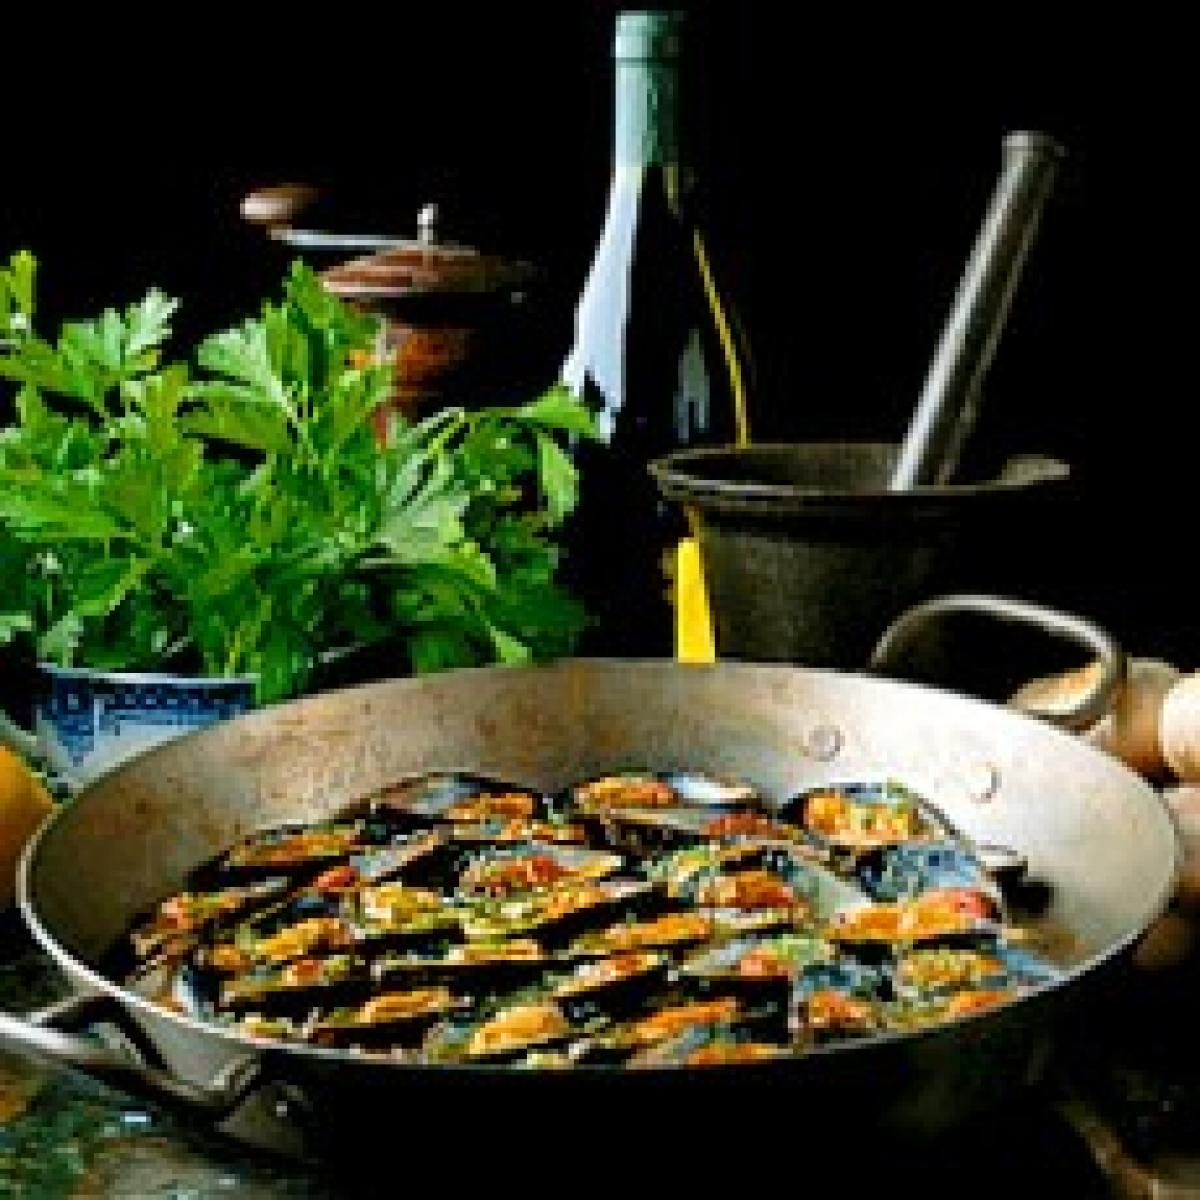 A picture of Delia's Gratin of Mussels in Garlic Butter recipe